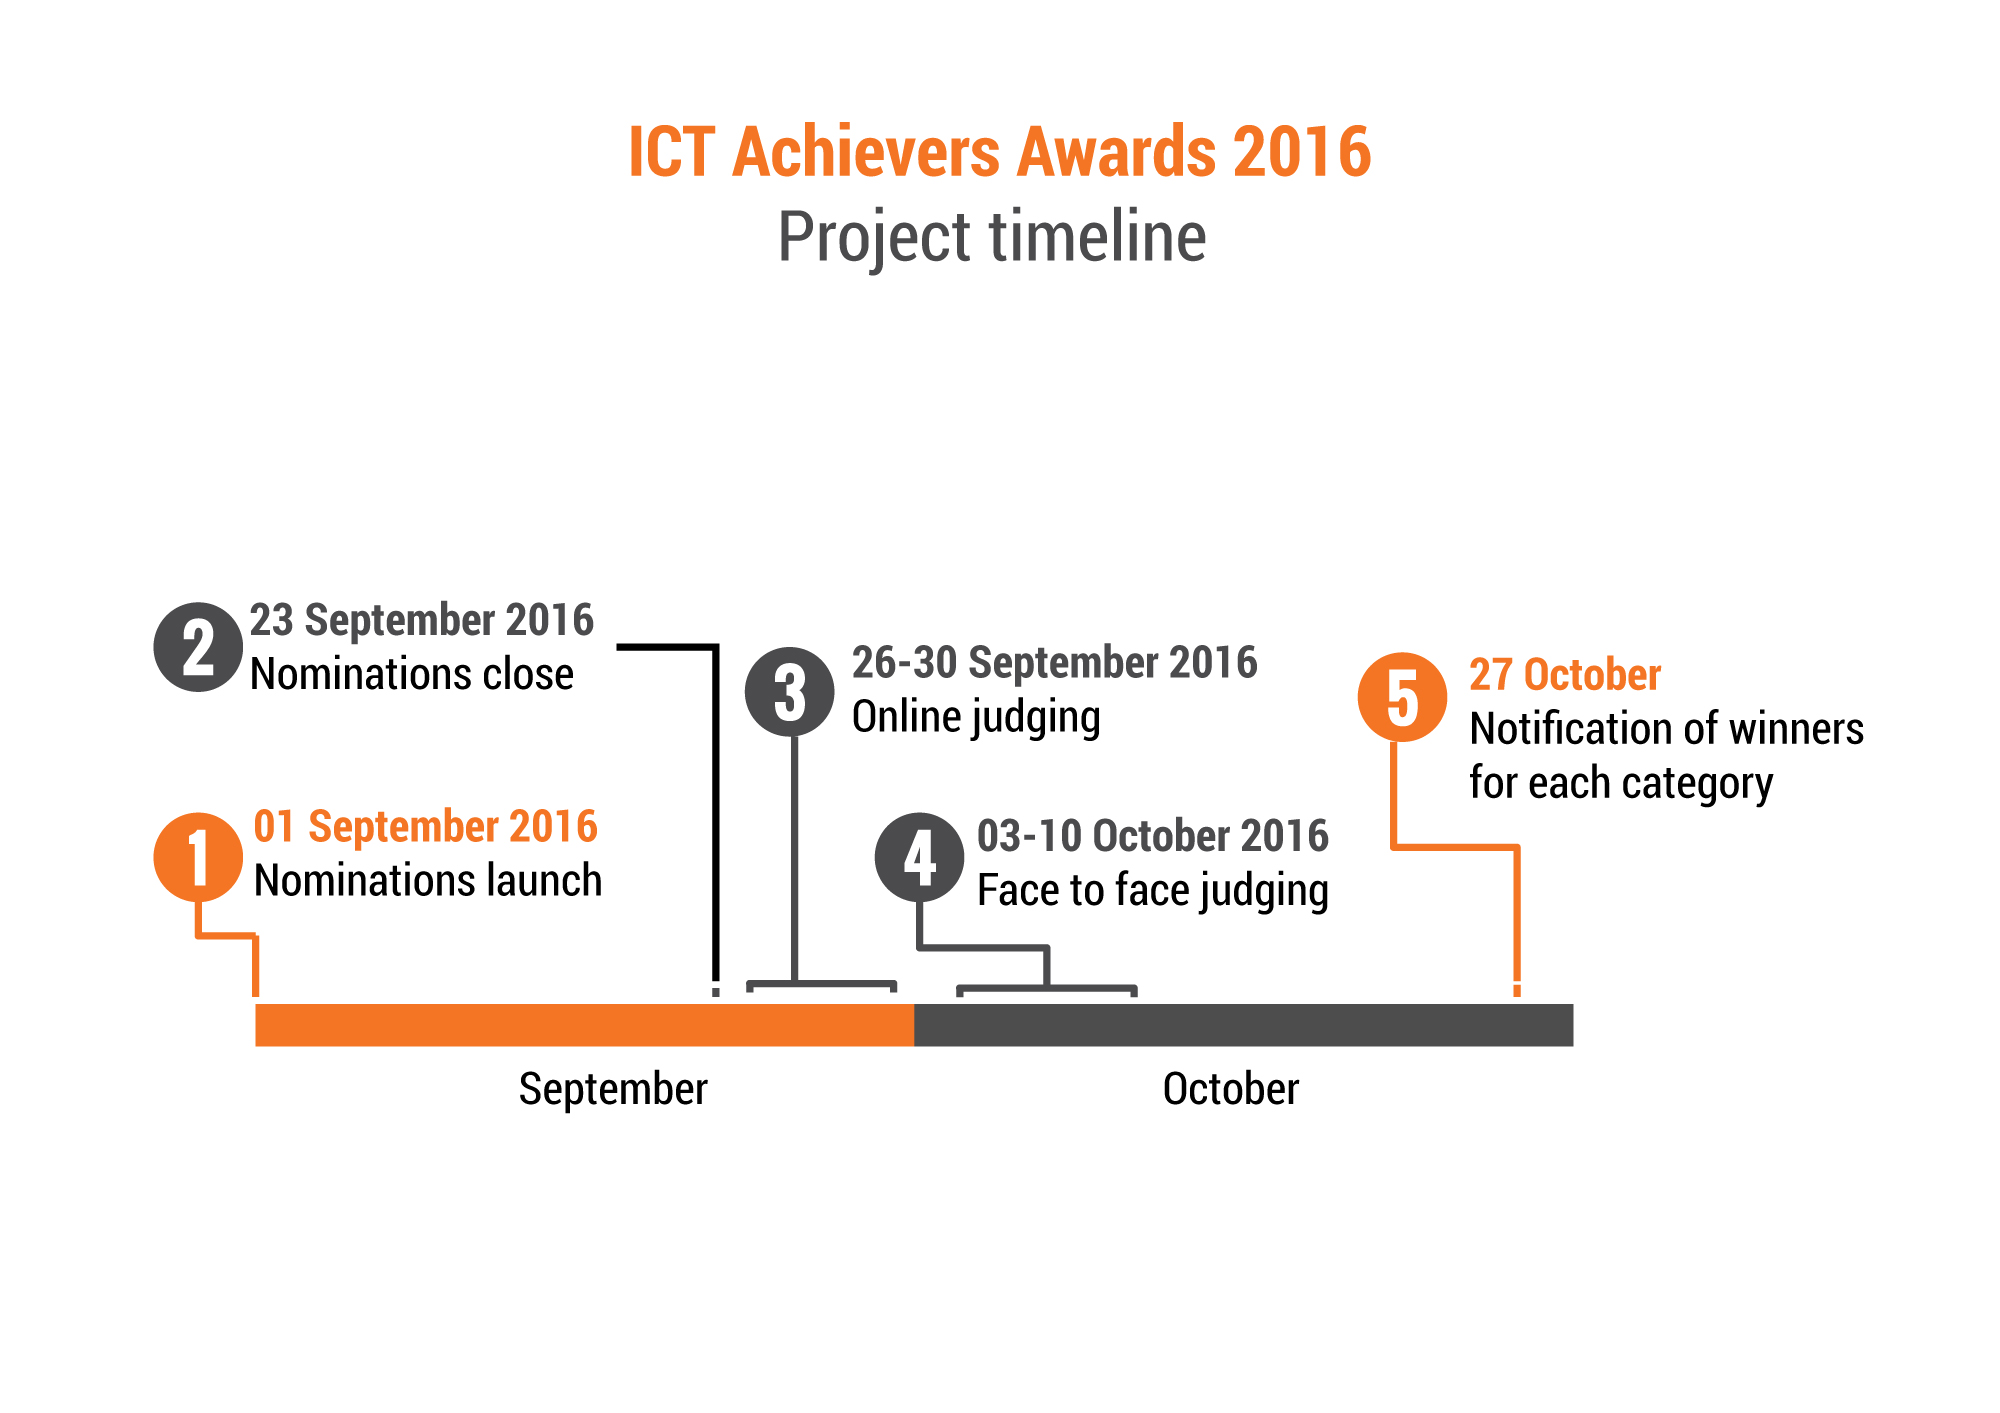 ICT_awards_timeline02